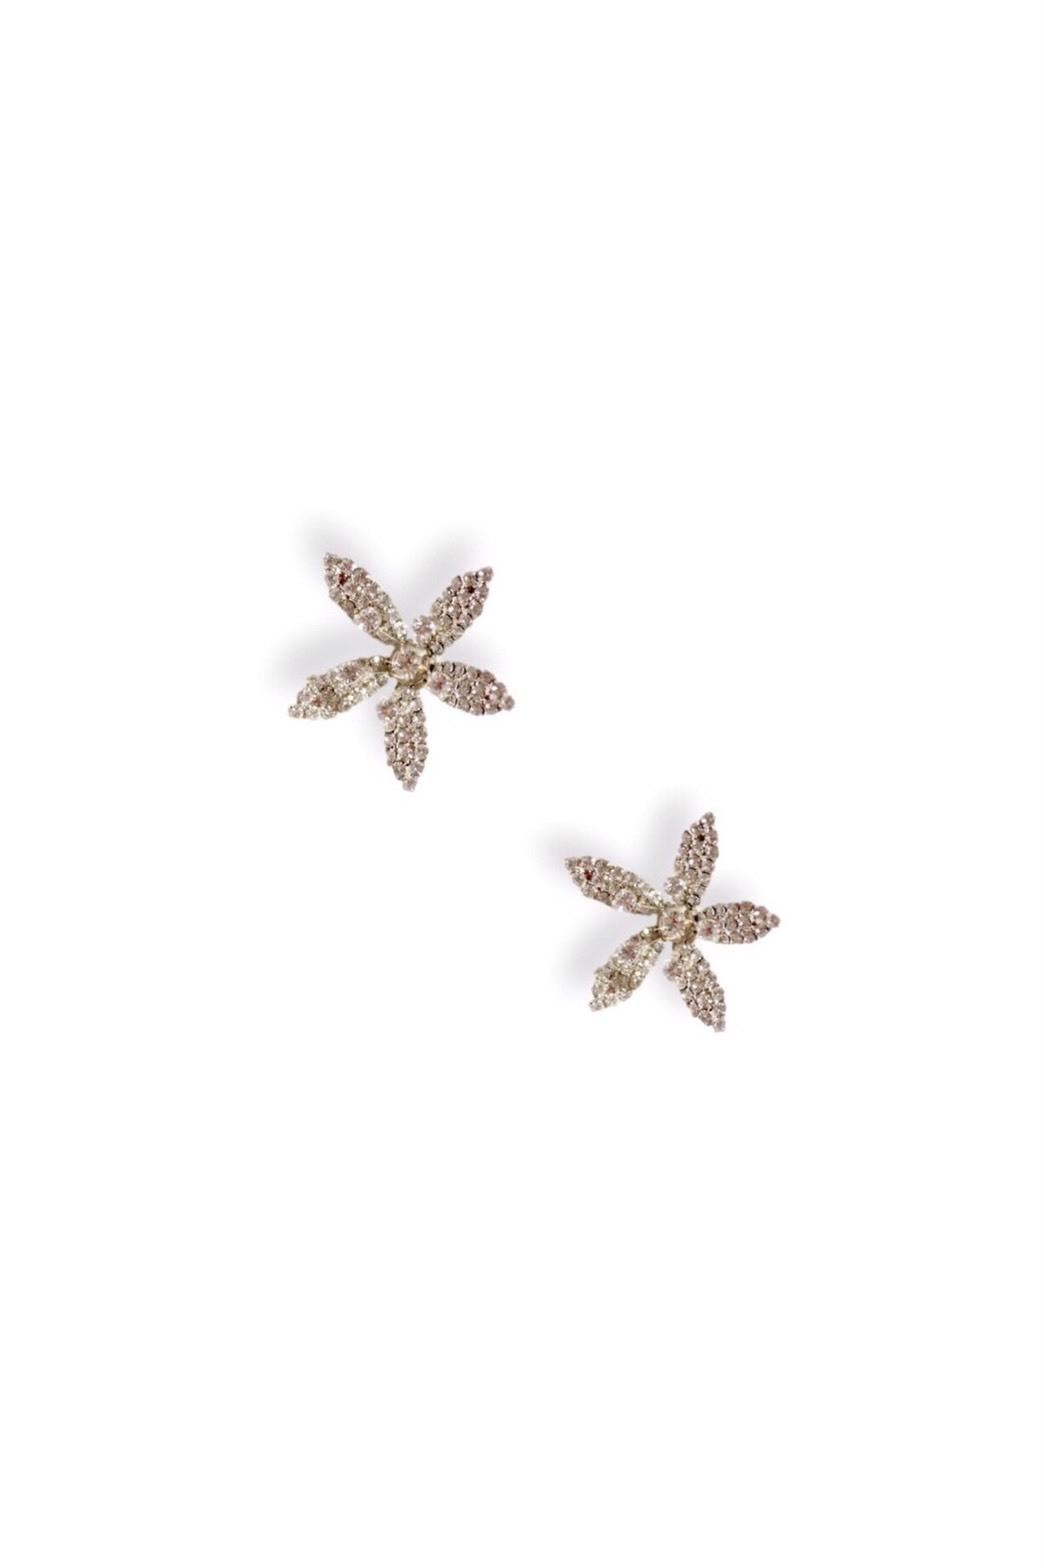 [RENTAL][Petite Crystal Orchid Pierce]by JENNIFER BEHR(参考価格¥38,940)